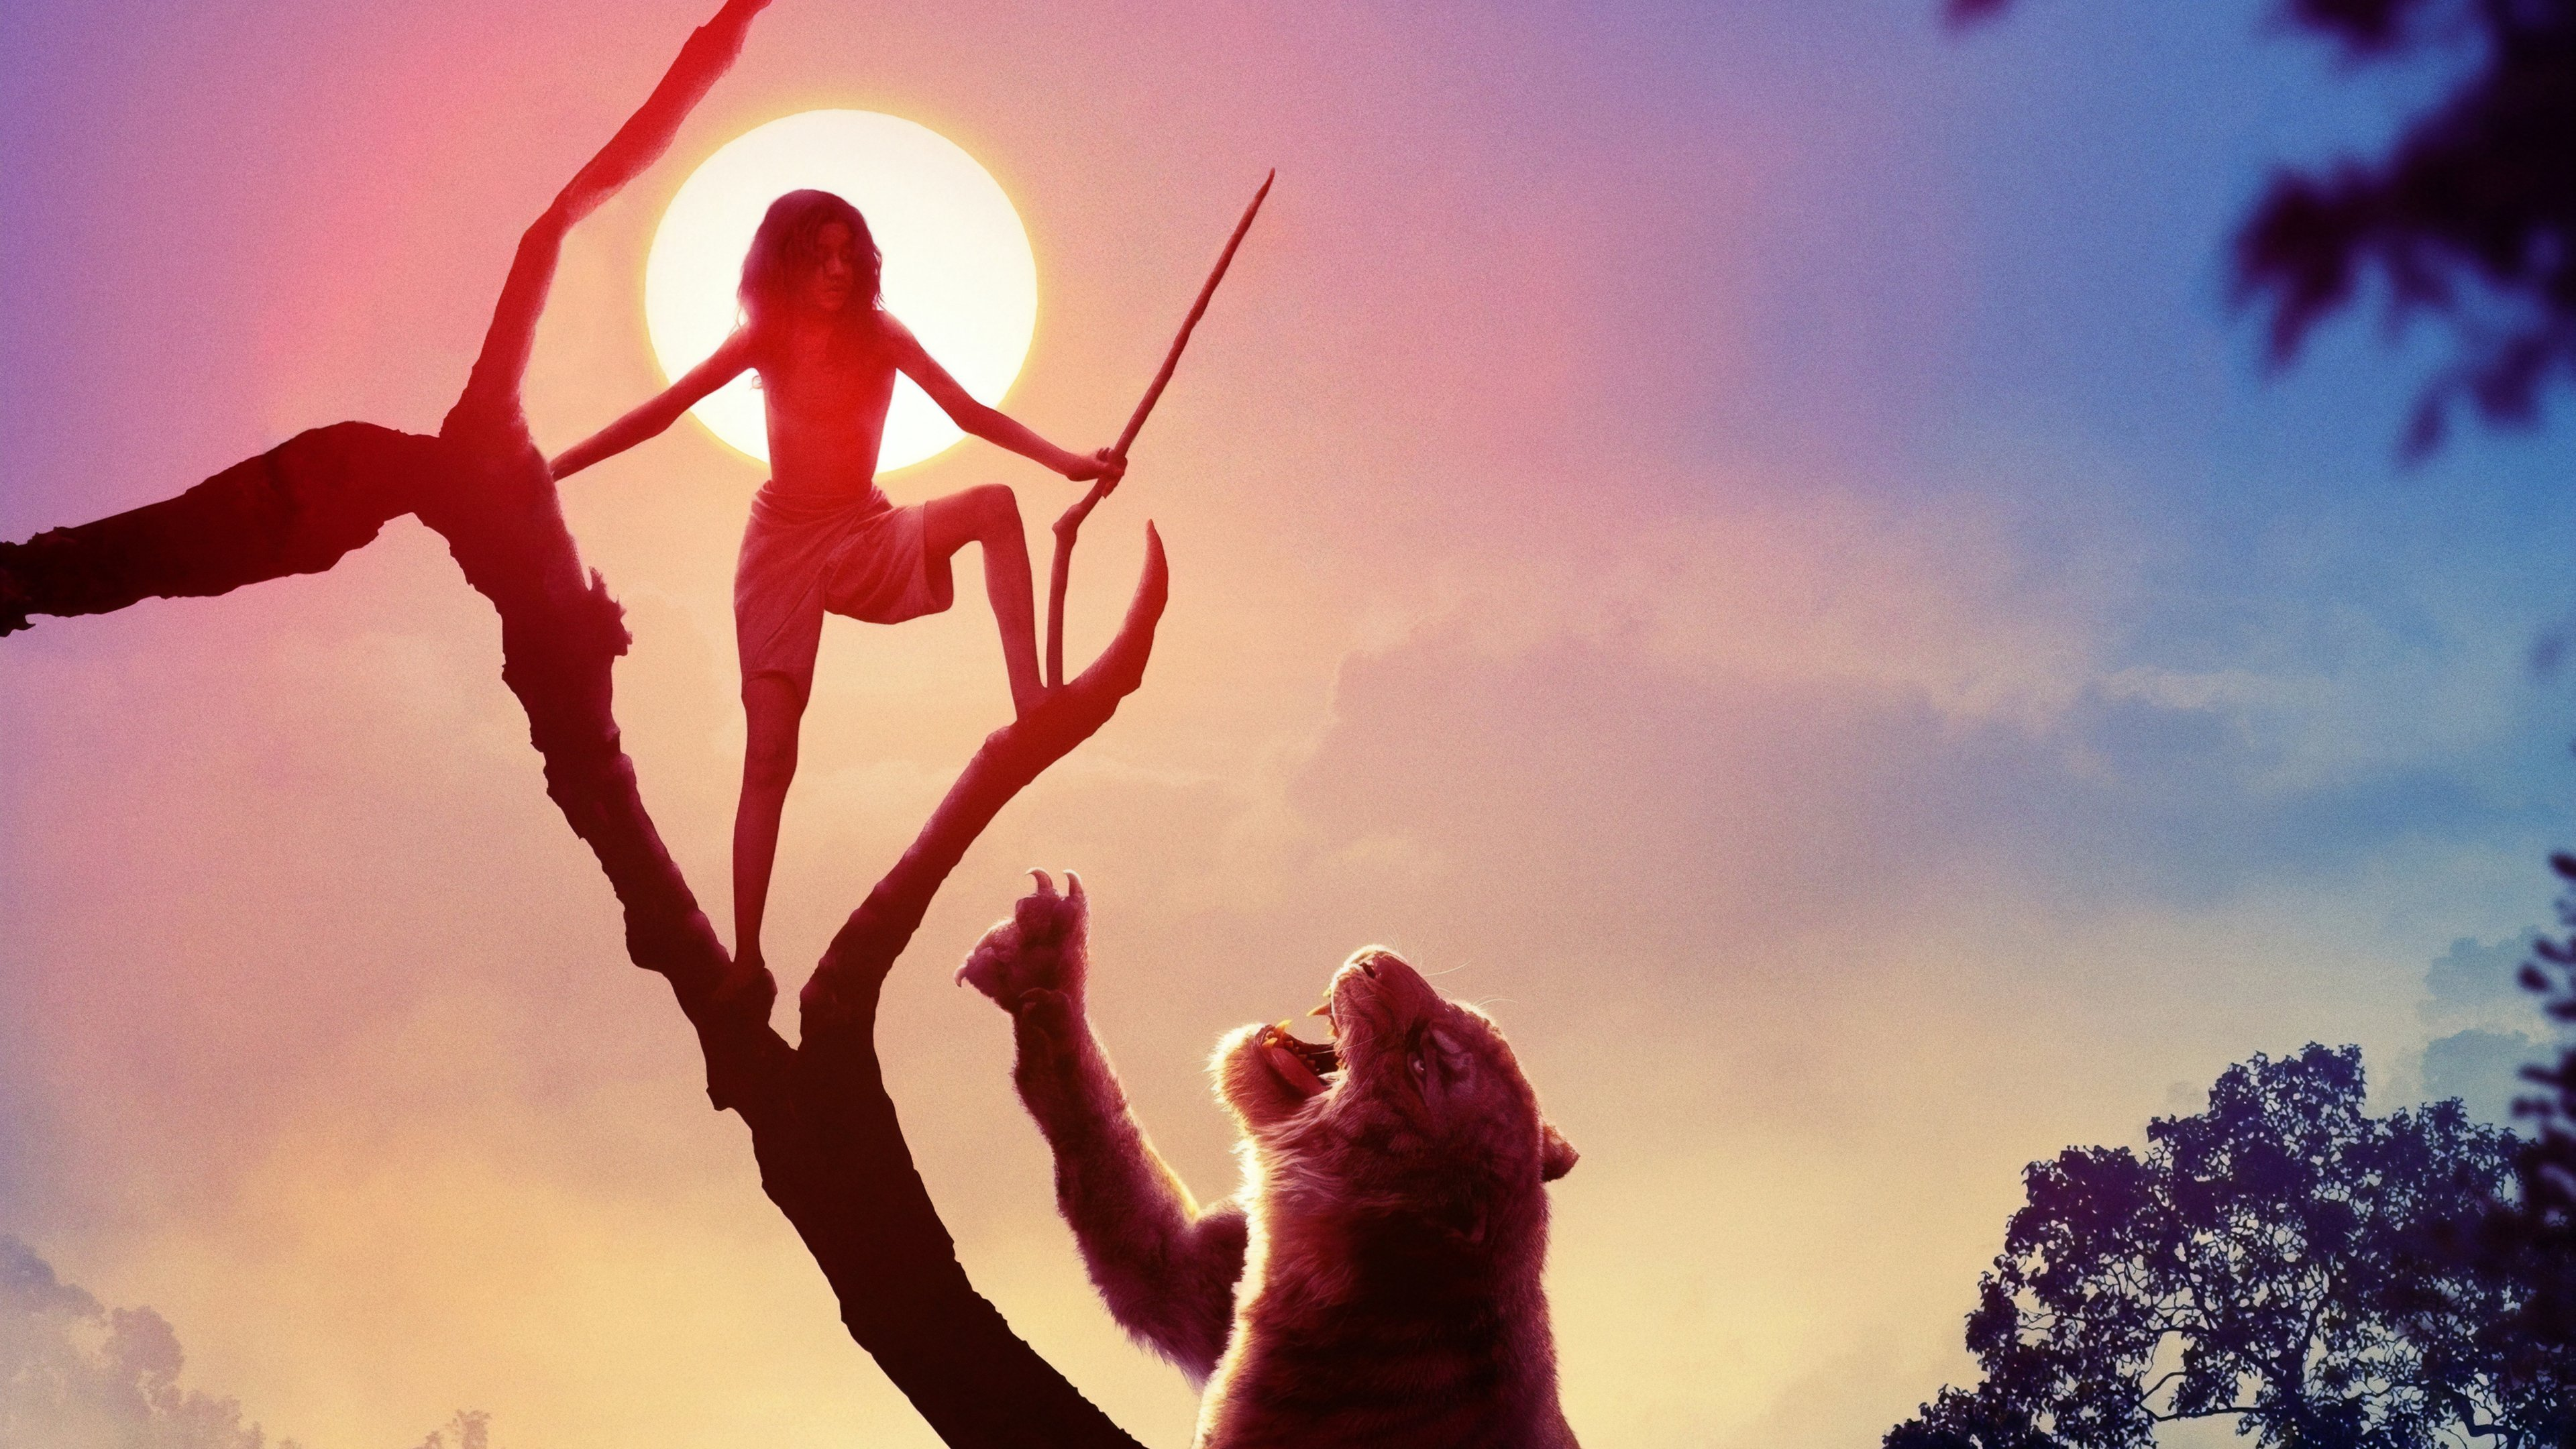 Mowgli Legend of the Jungle 4K Wallpapers HD Wallpapers 3840x2160